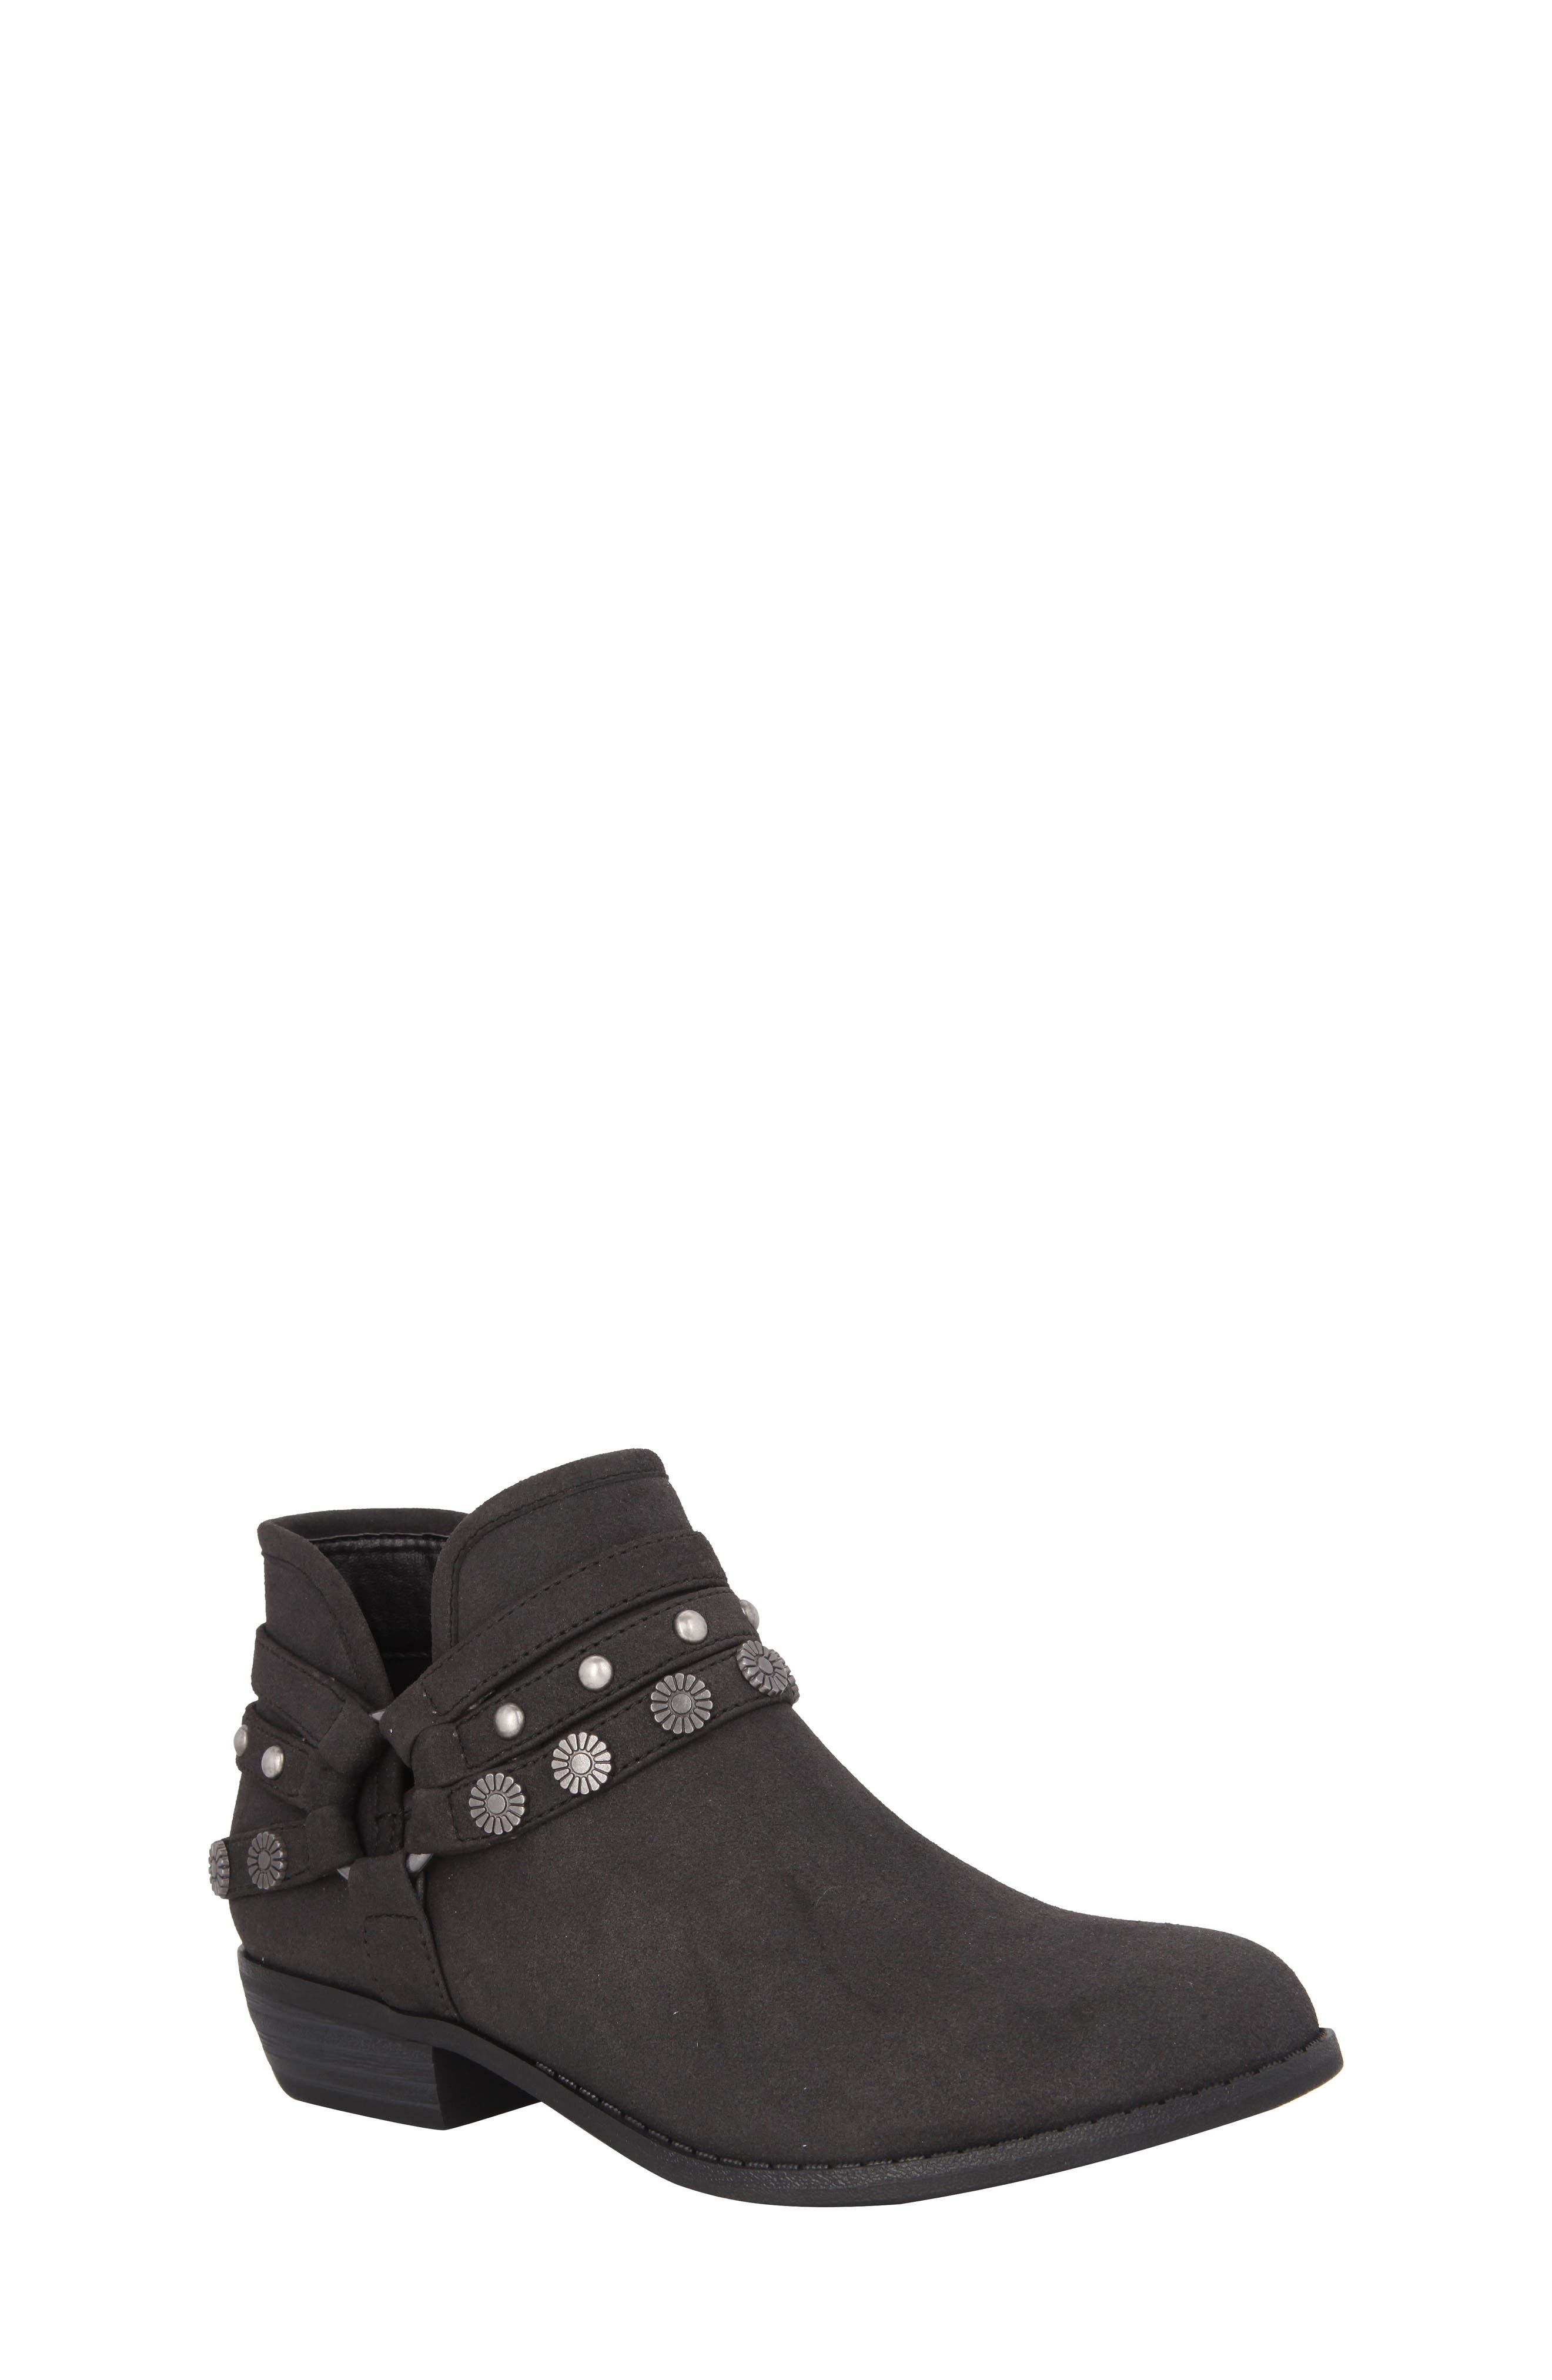 Alternate Image 1 Selected - Nina Zoe Strappy Low Bootie (Toddler, Little Kid & Big Kid)